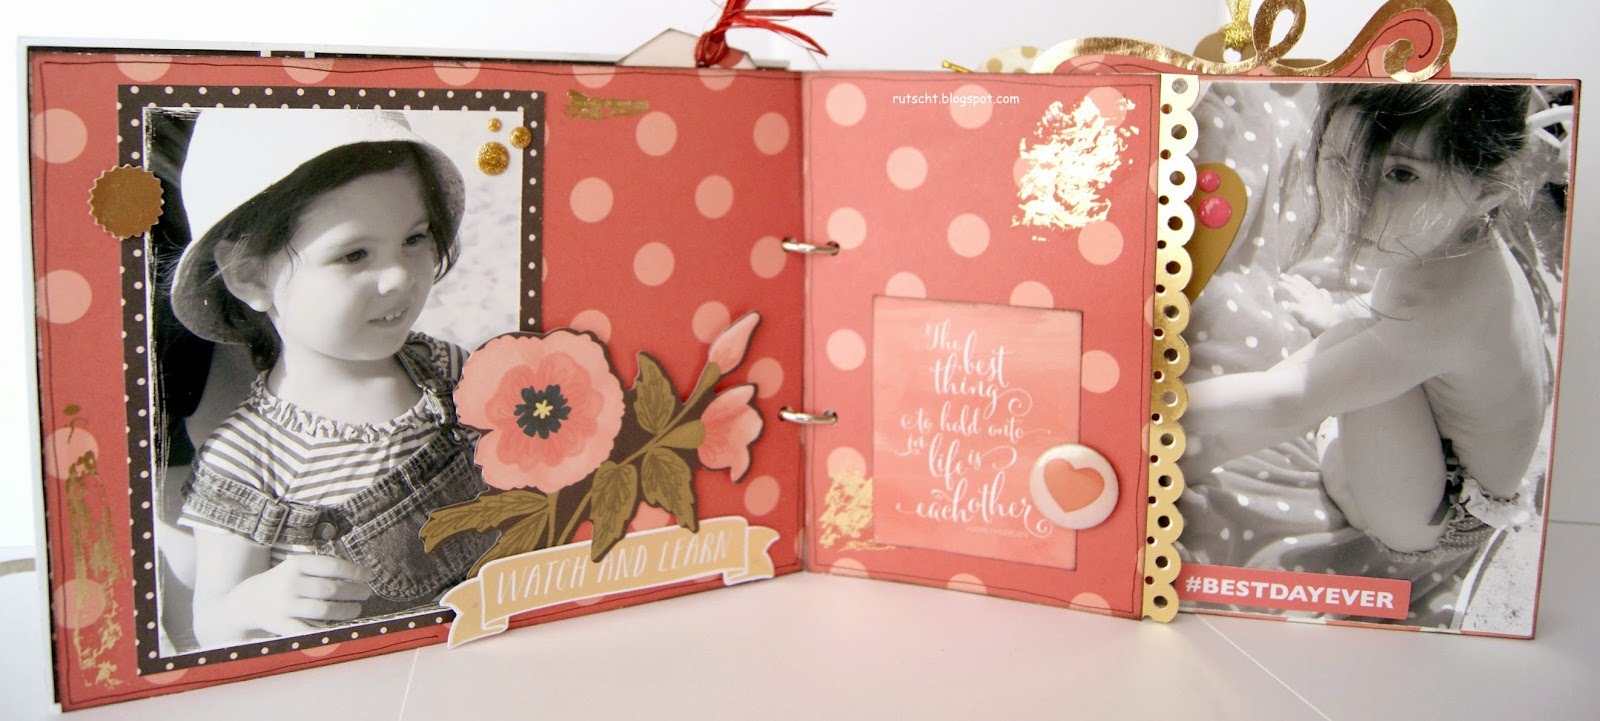 Rutscht awesome mini lbum de scrapbooking - Como hacer un album scrapbook ...